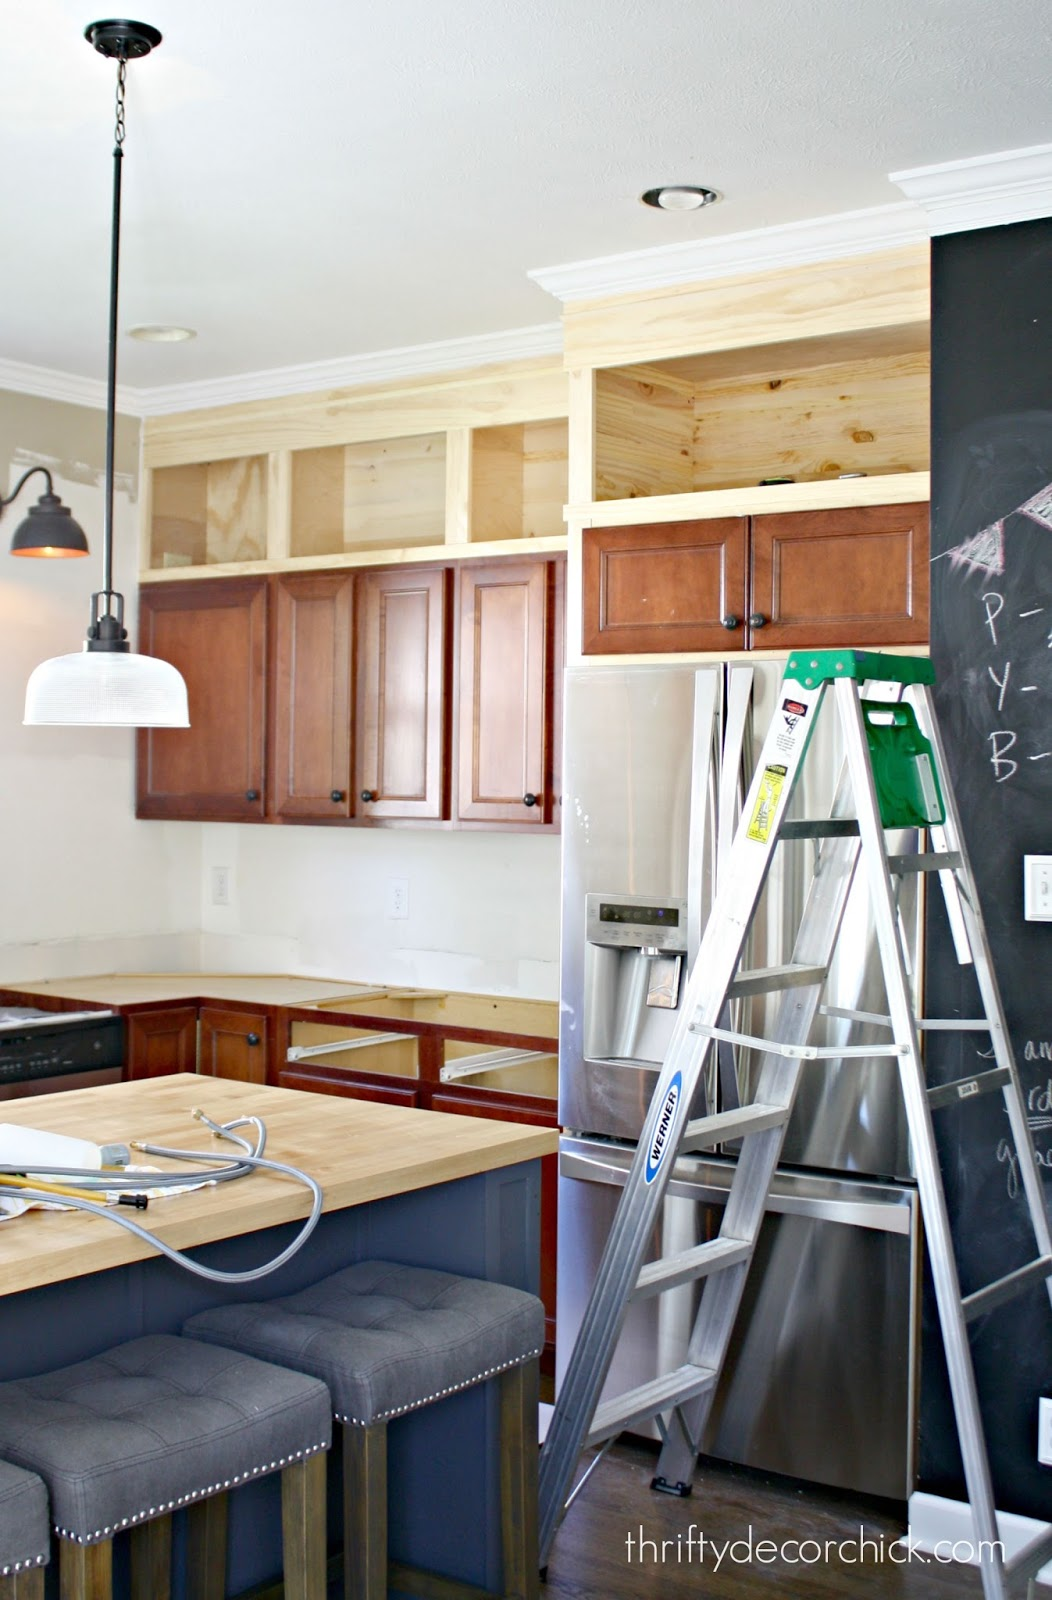 The Epic How To Paint Your Kitchen Cabinets Tutorial From